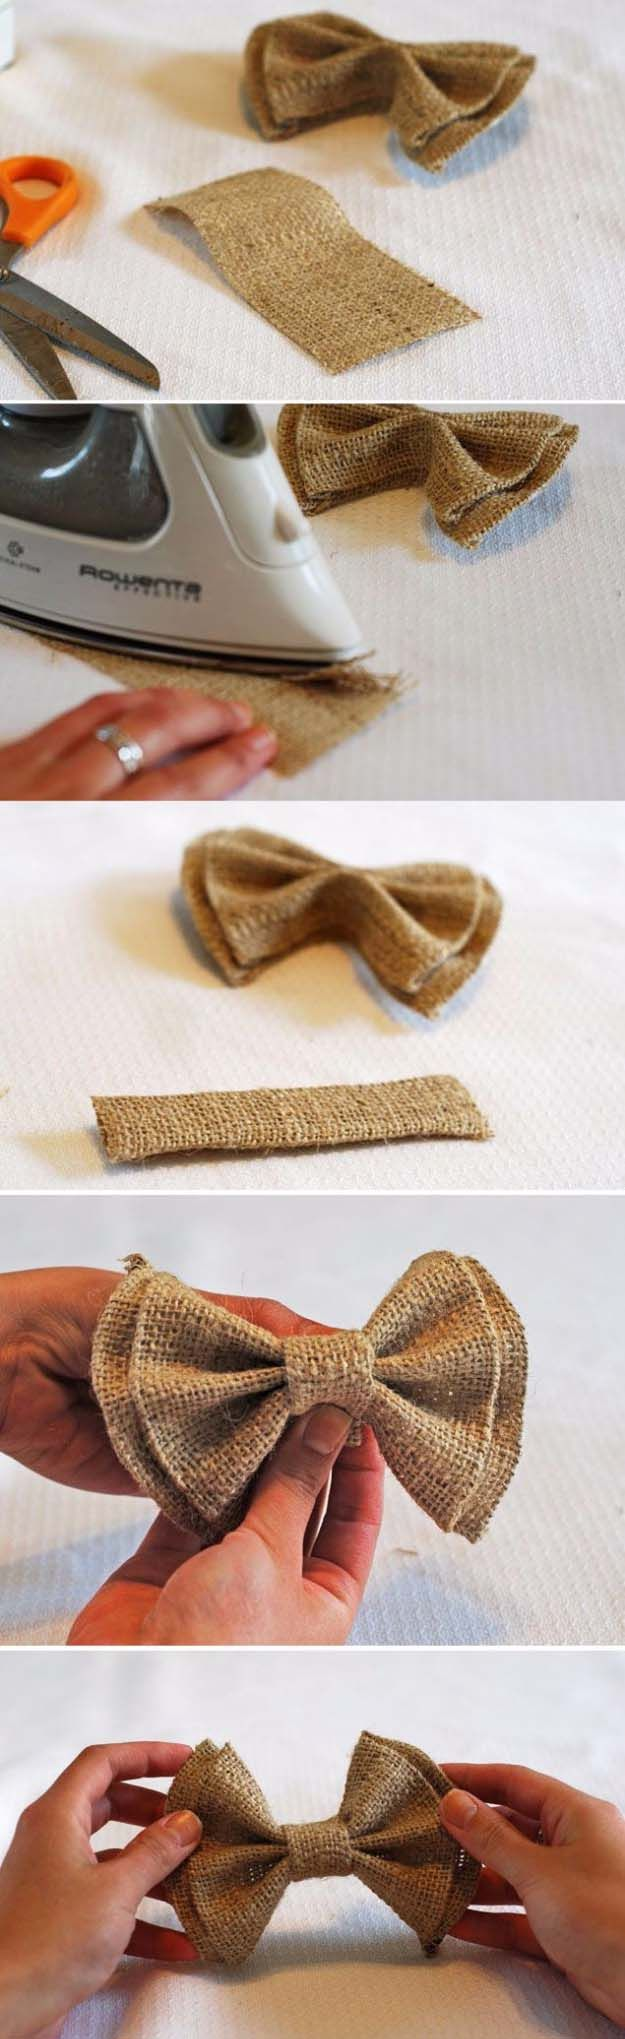 50 Creative DIY Projects Made With Burlap Bow Tie TutorialDiy